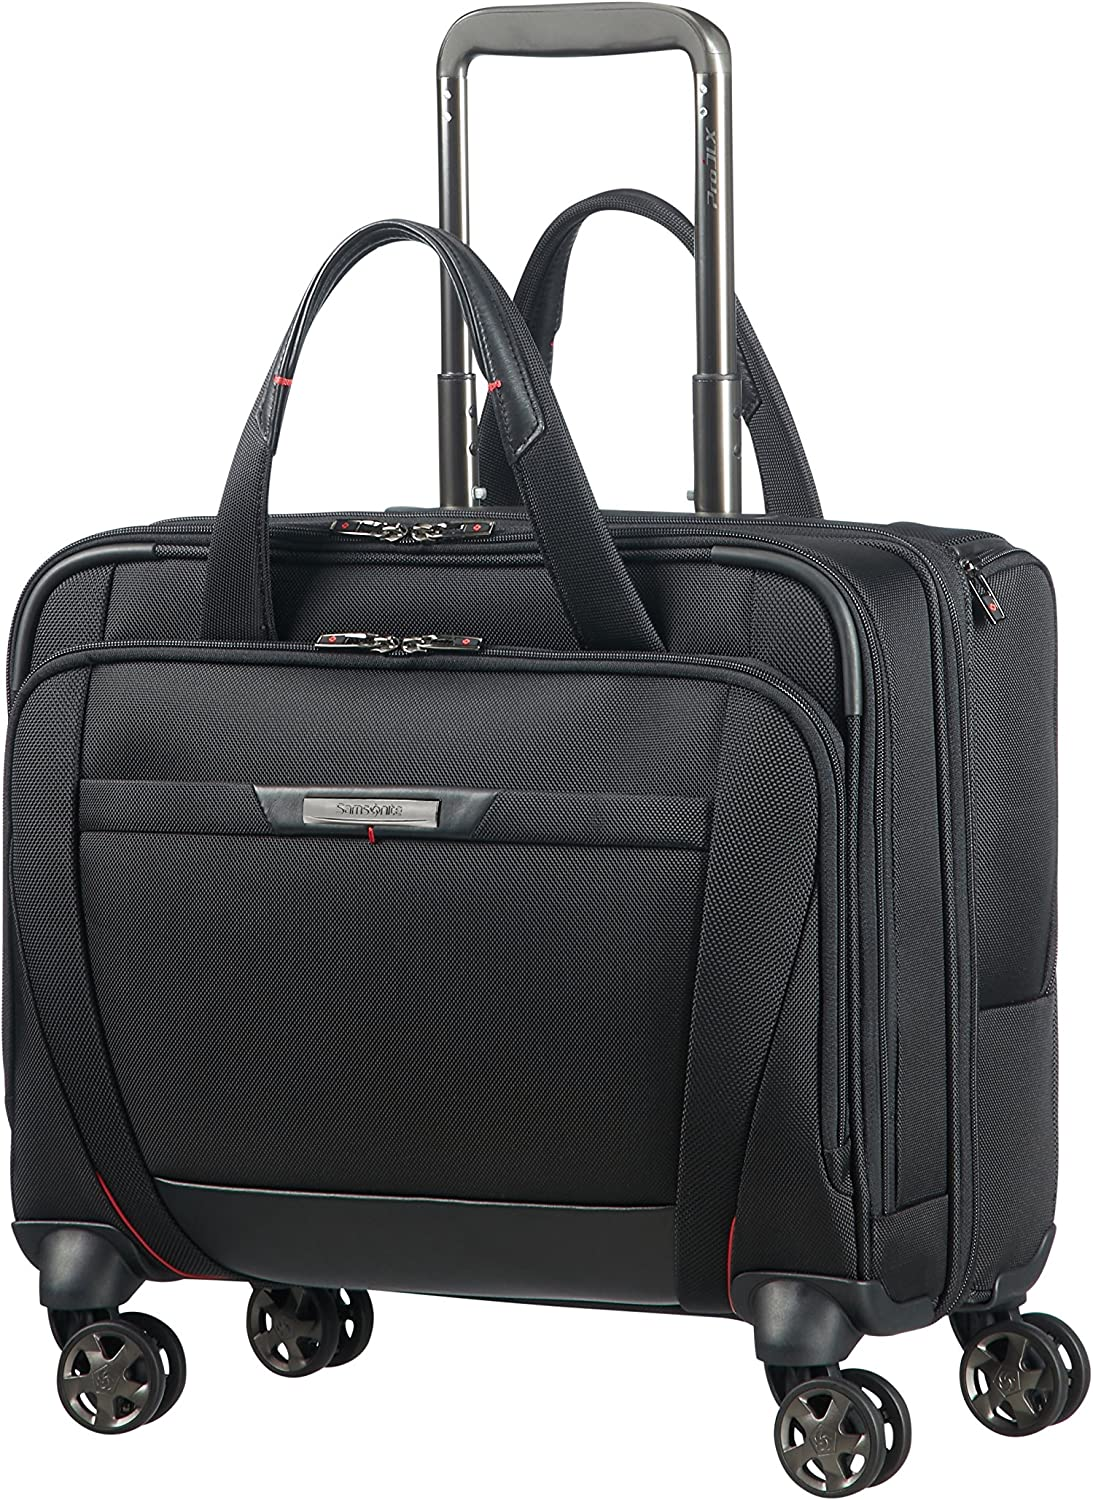 Samsonite PRO-DLX 5 - Spinner Tote for 15.6'' Laptop 3.3 KG Bolso de viaje, 44 cm, 22 liters, Negro (Black)